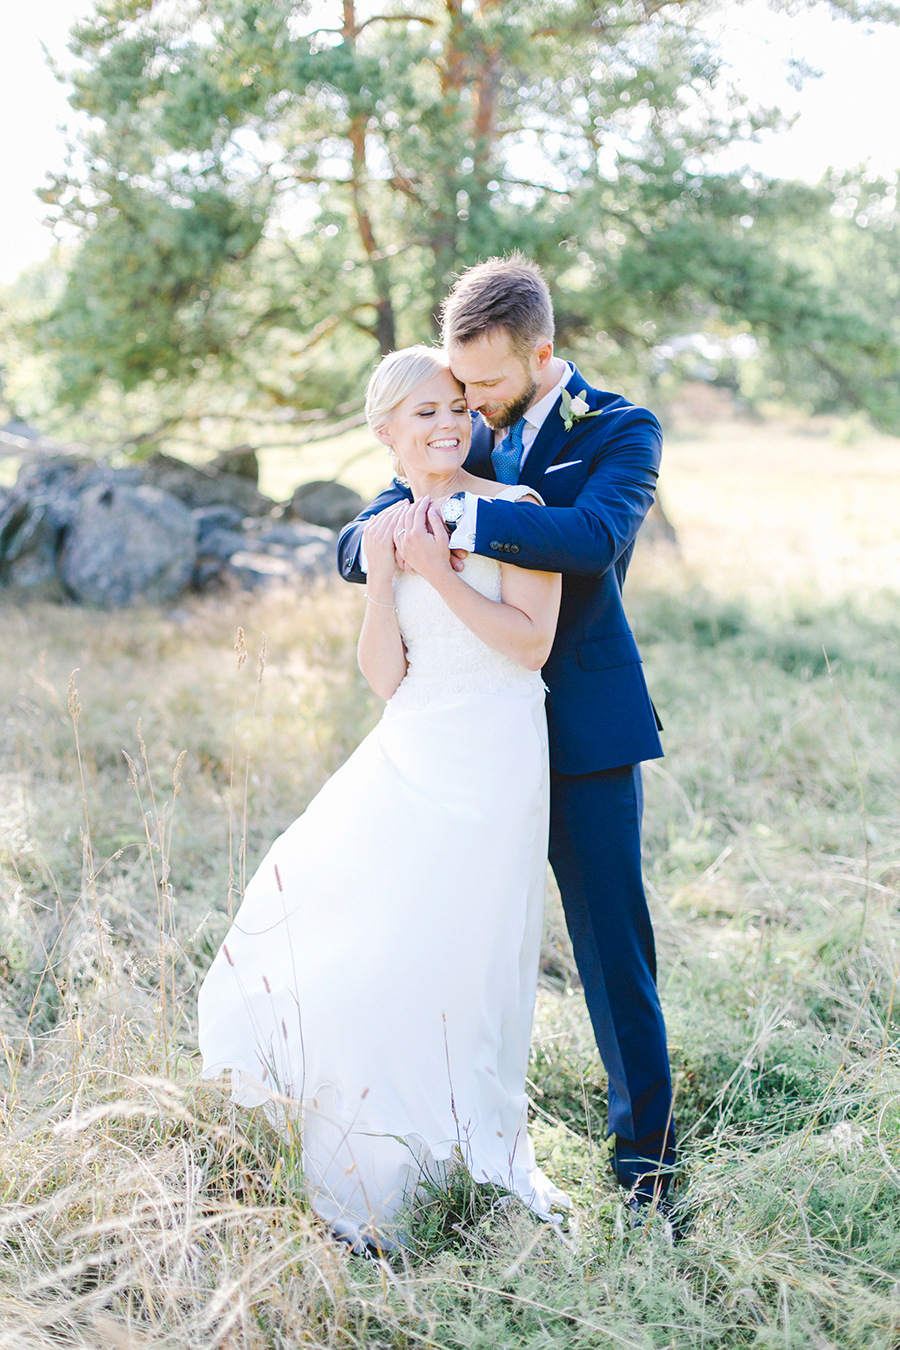 rebeccahansson.com-wedding-Elin-and-Peder-august-13th-2016-(479).jpg